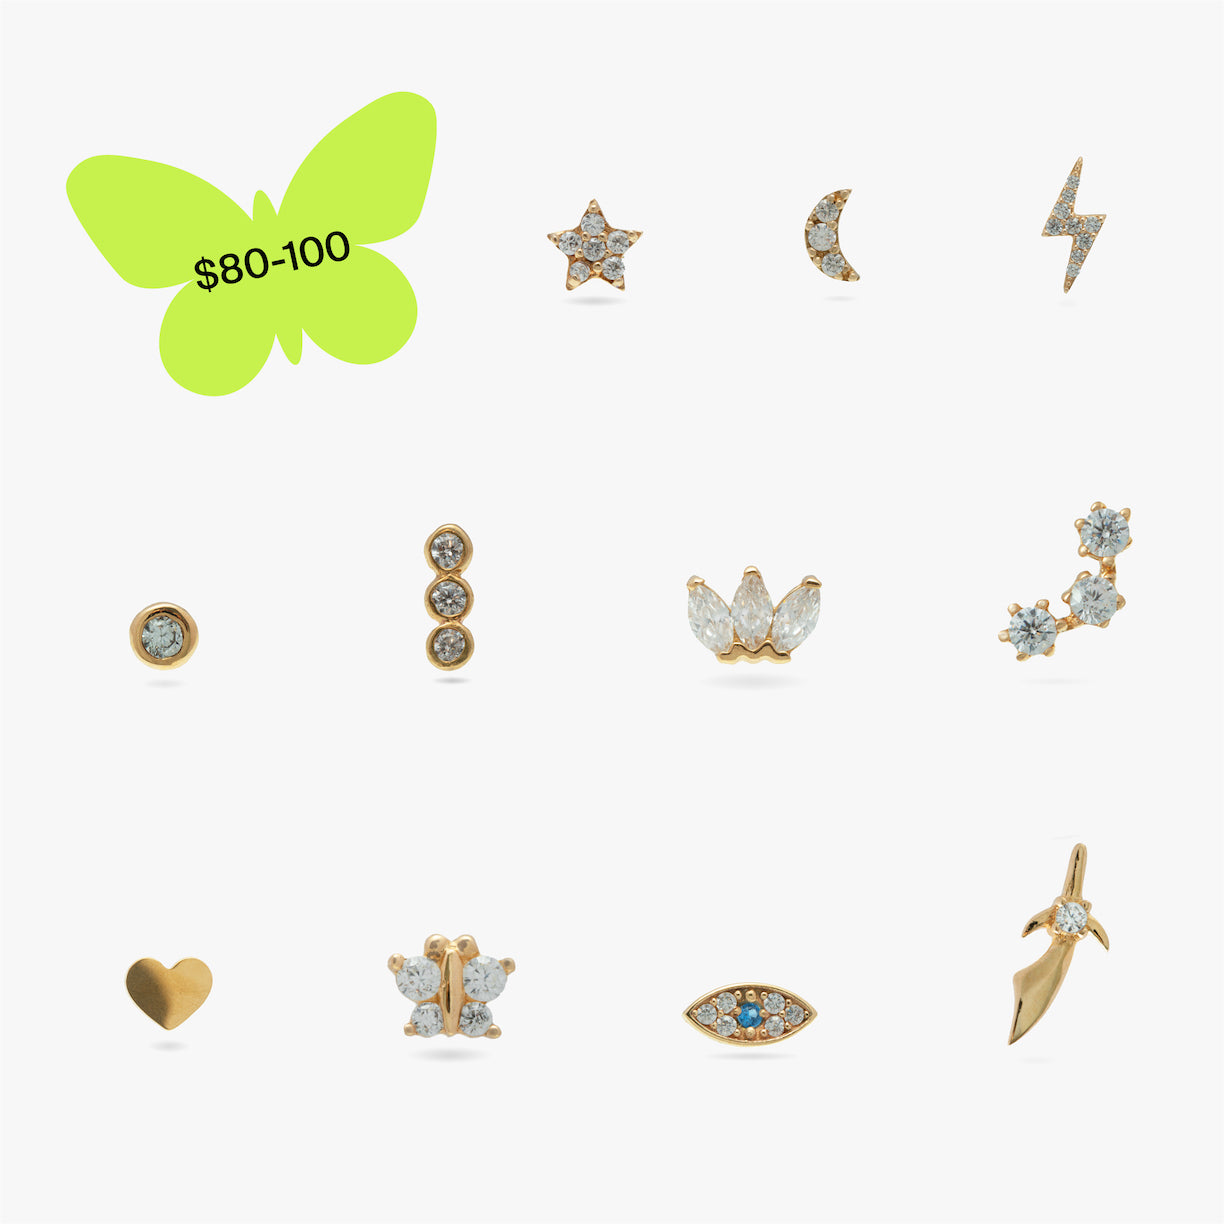 Image of 11 earrings in a grid that range in price from $80 to $100.